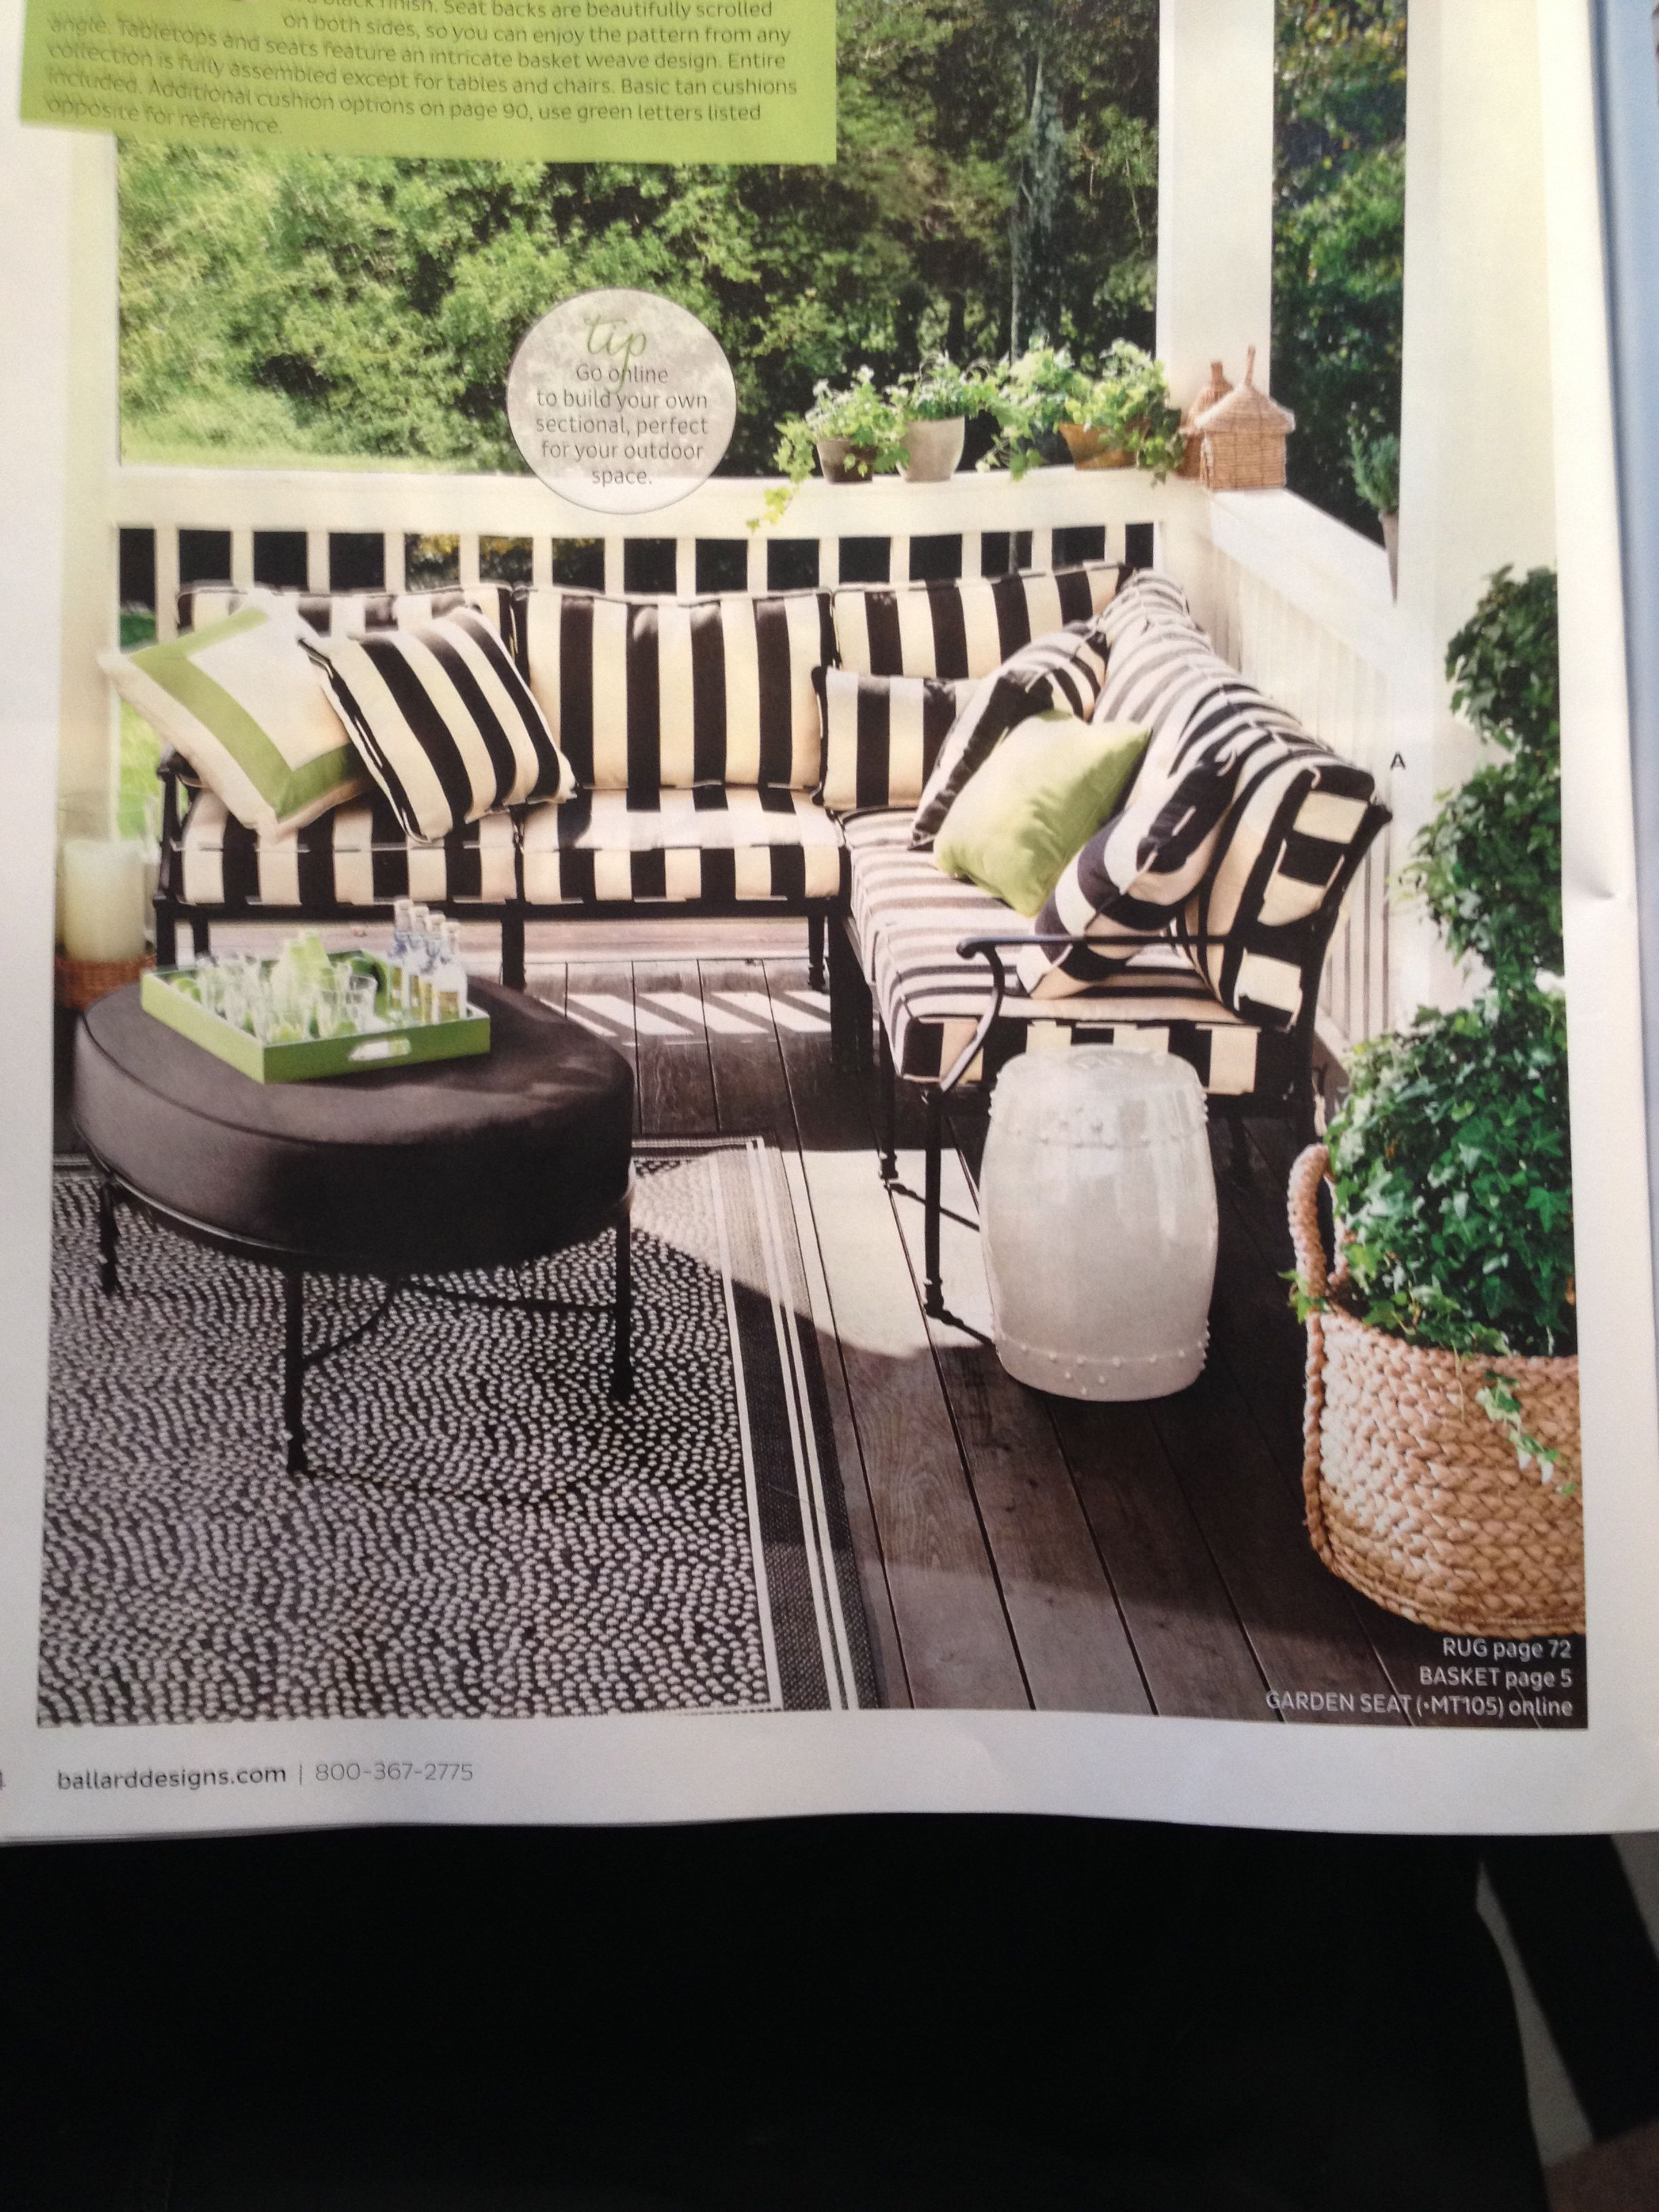 Ballard outdoor sectional fast dry outdoor amalfi 3 piece sectional cushion item fc328 699 00 899 00